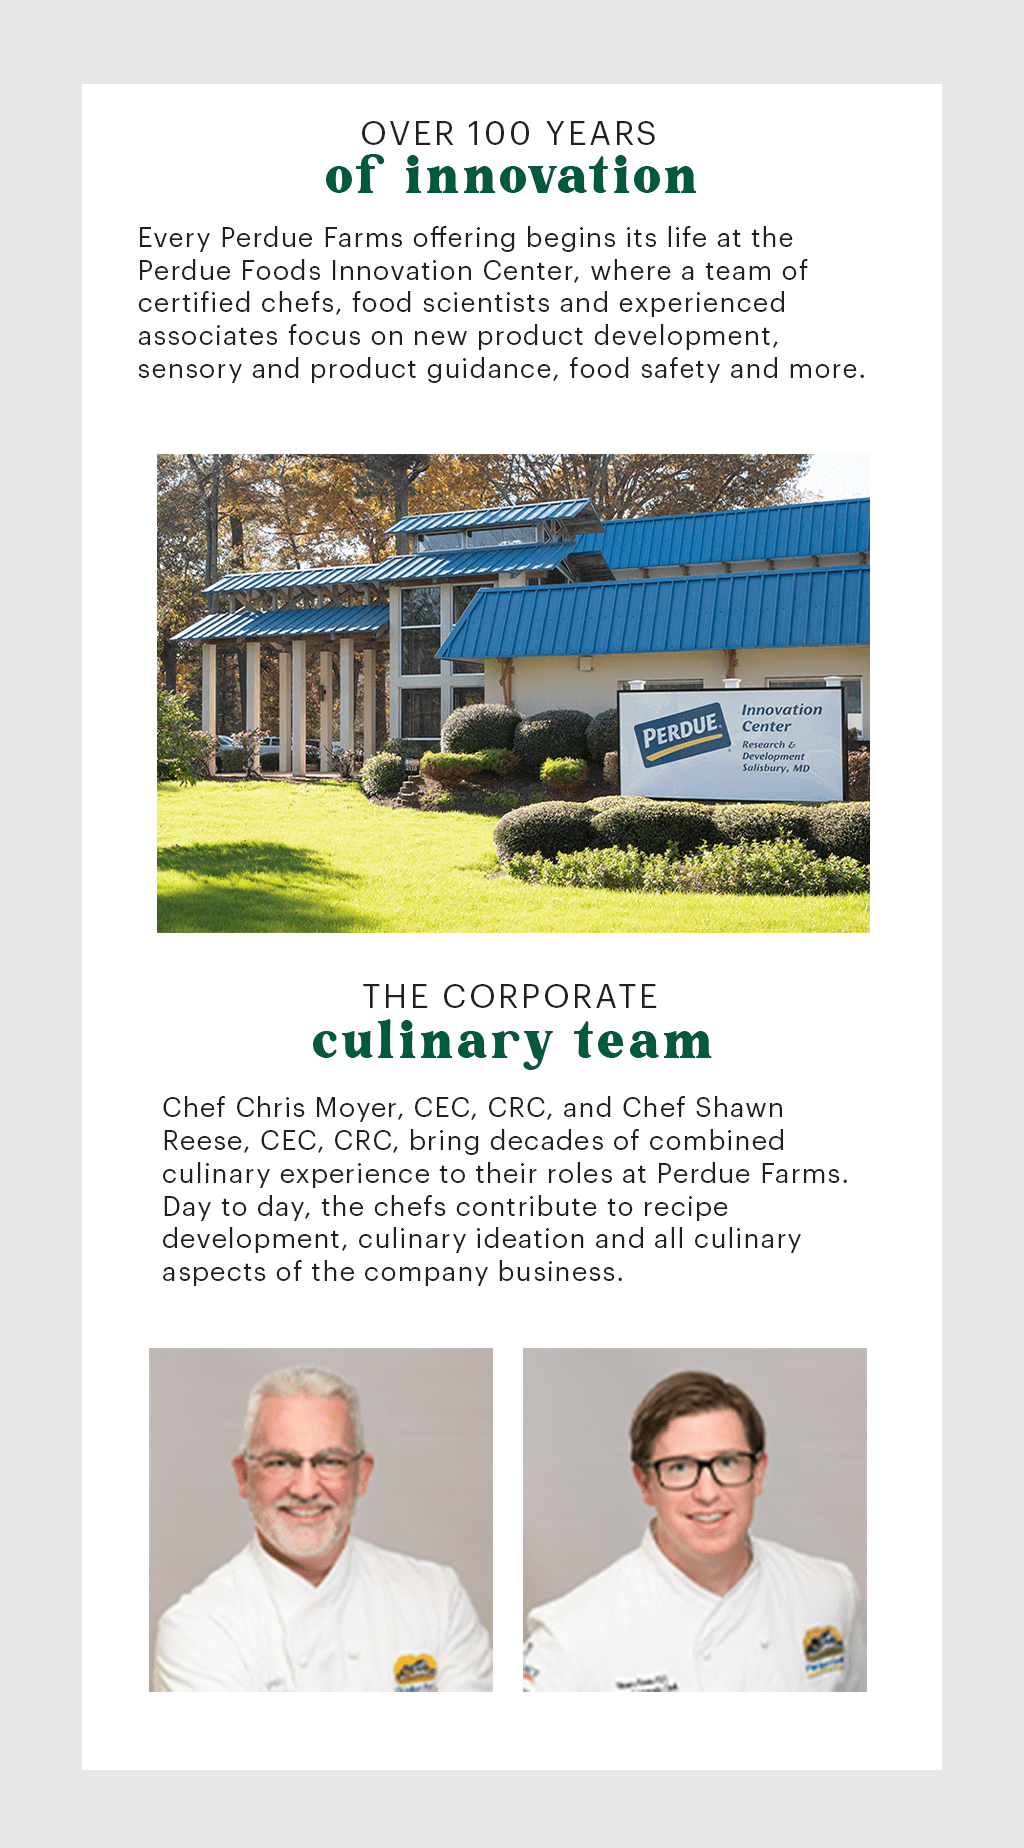 Perdue Innovation Center and Culinary Team